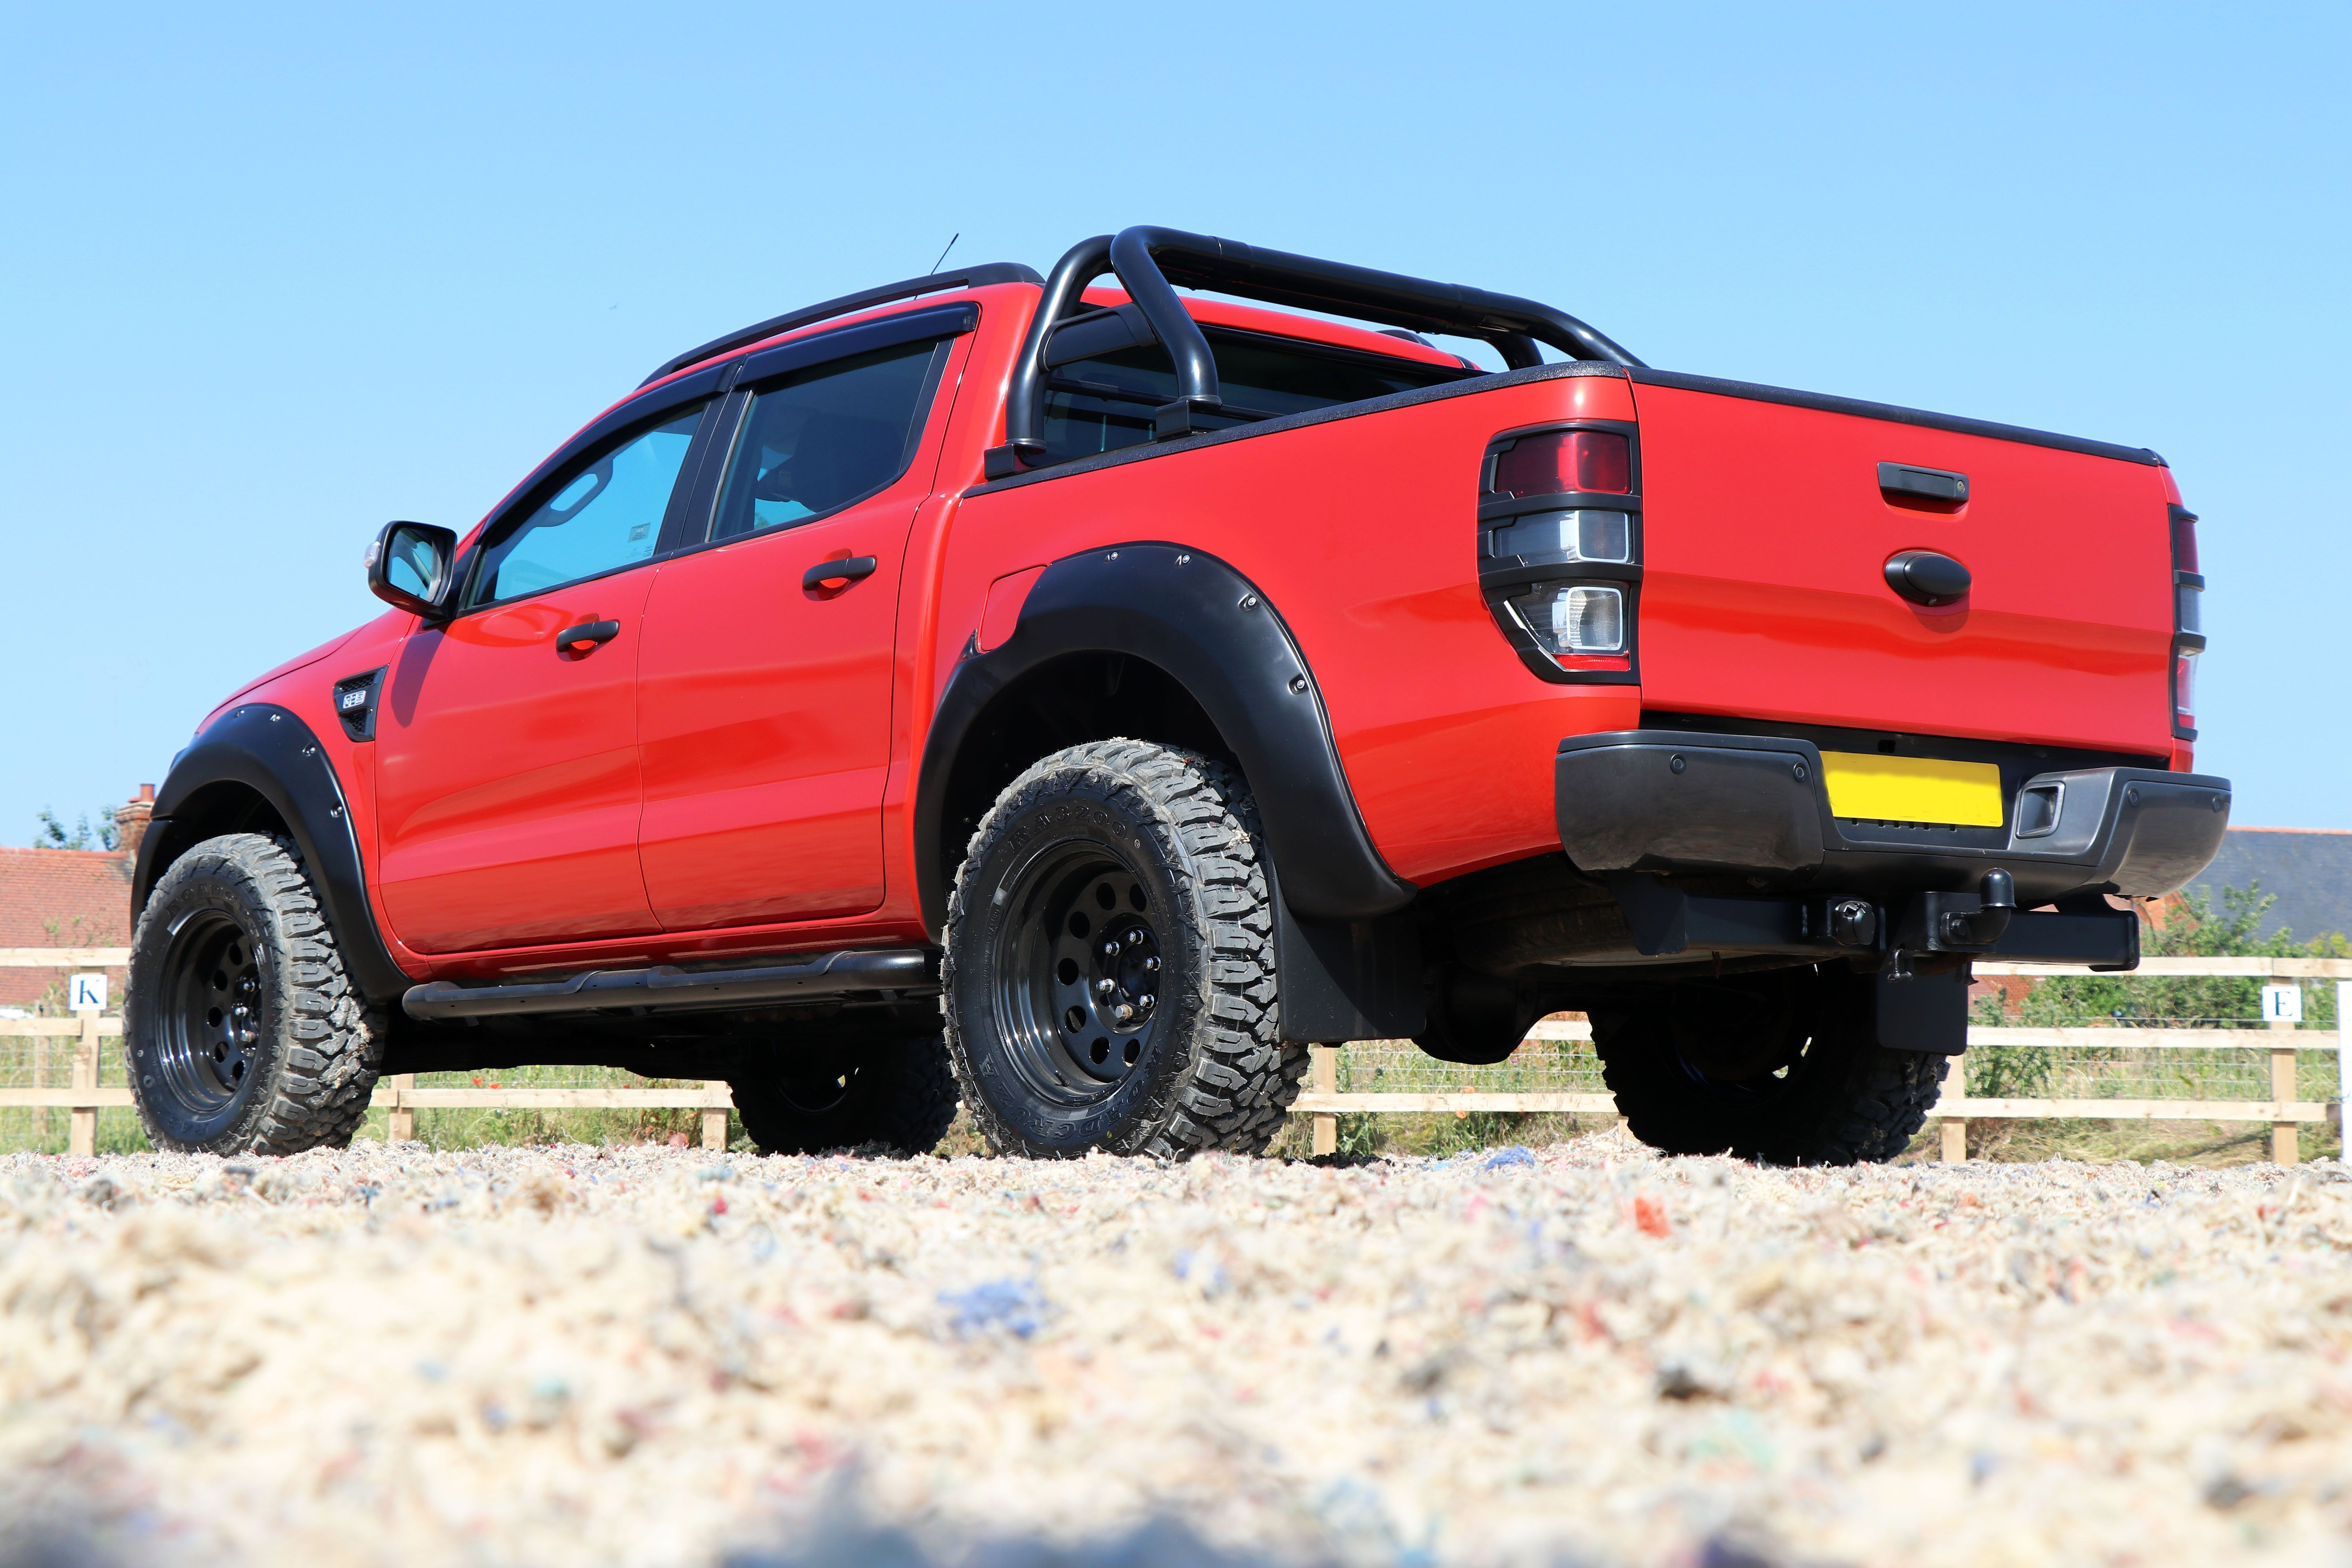 Our latest SEEKER Raptor the Flame Wrap Edition